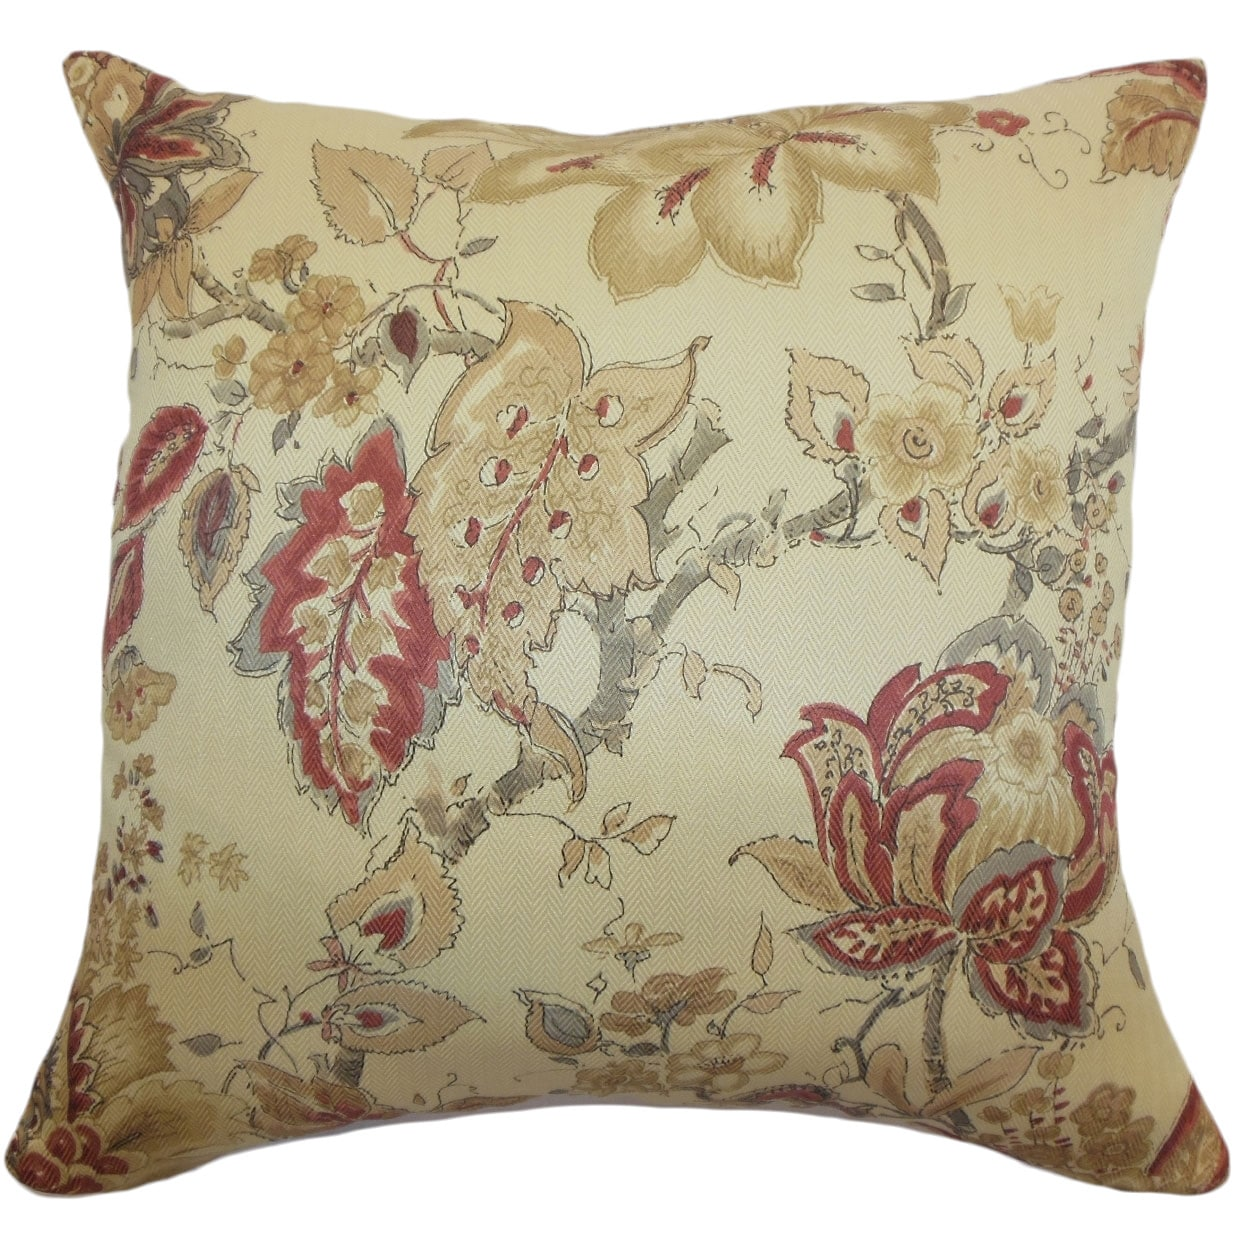 Helena Burgundy Floral 18 Inch Down Filled Throw Pillow Overstock 9091342